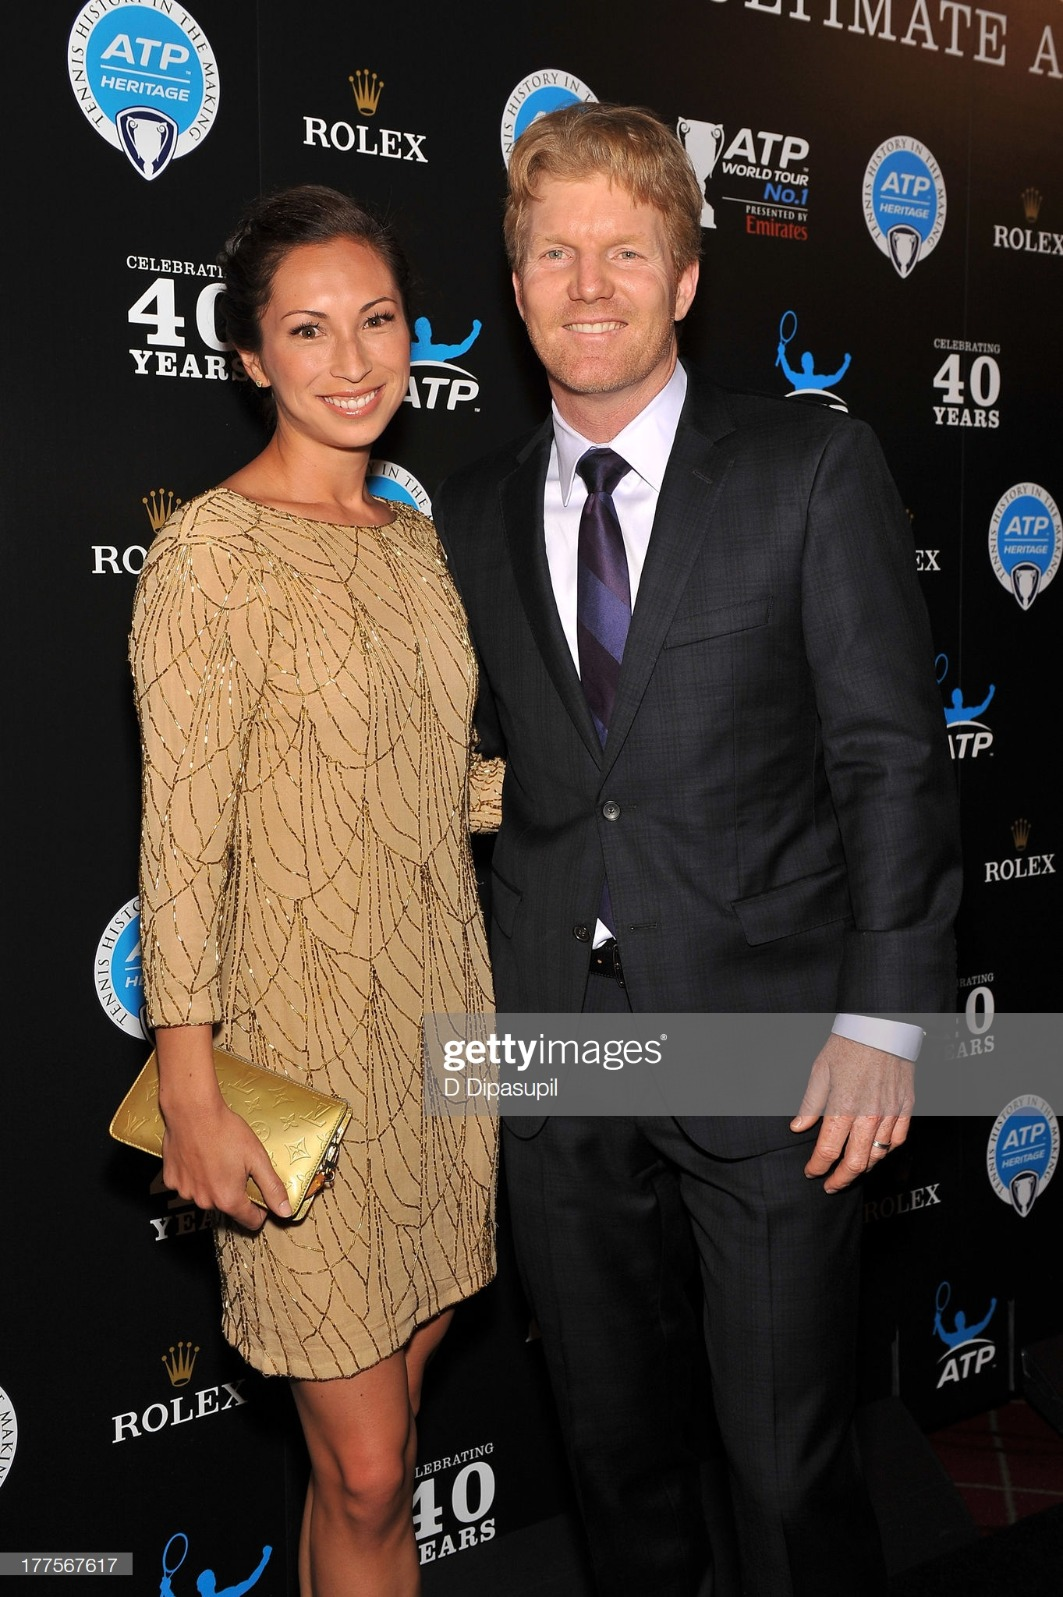 ATP Heritage Celebration - Red Carpet : News Photo